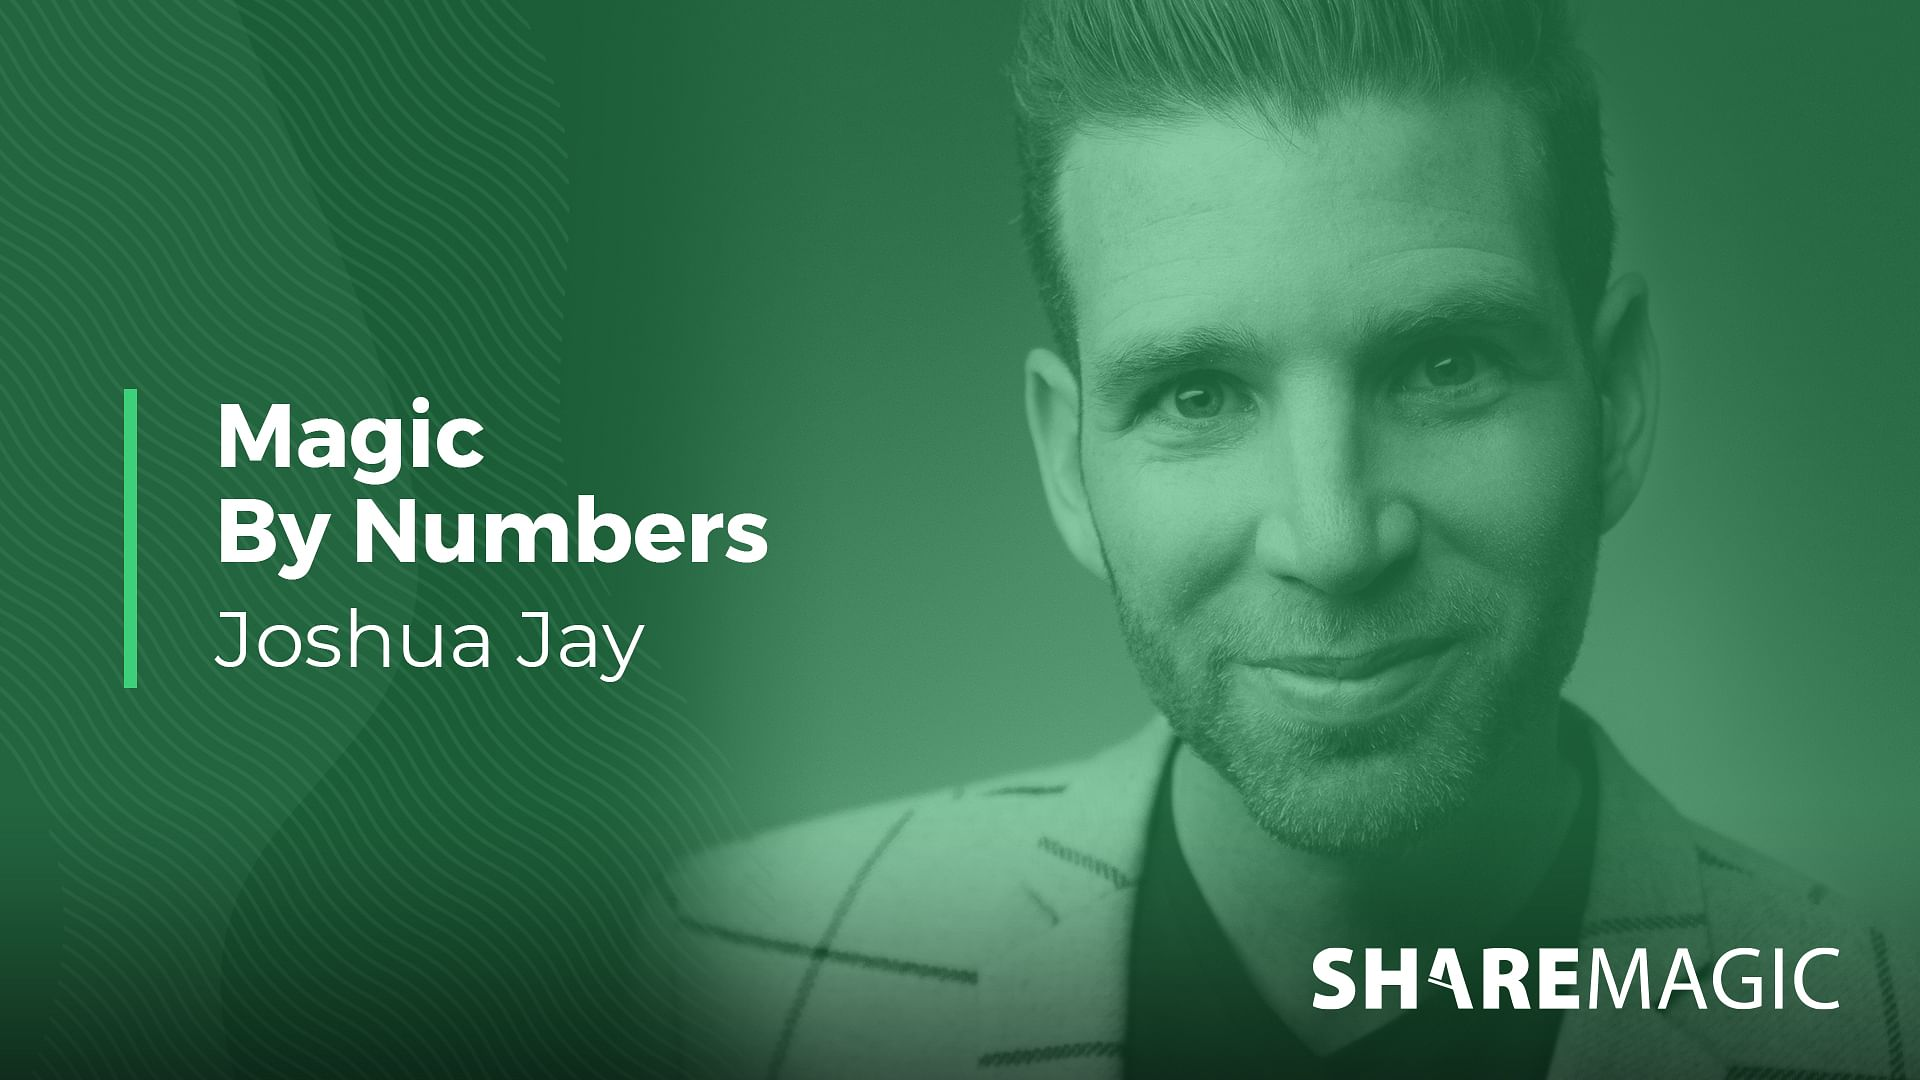 Joshua Jay: ShareMagic Talk